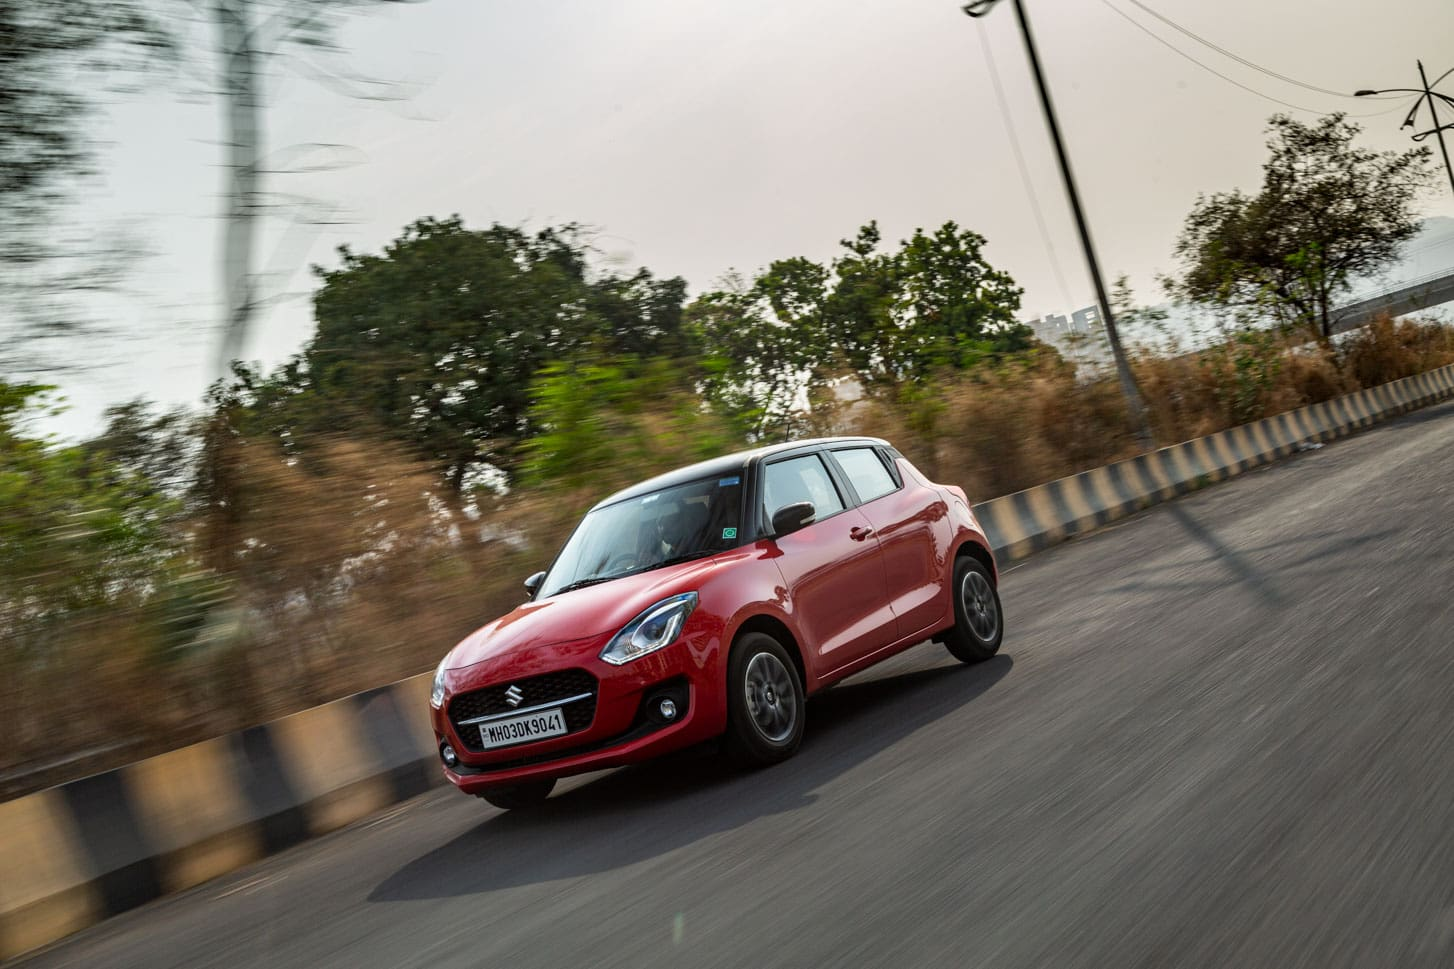 2021 Maruti Suzuki Swift Review: First Drive Review